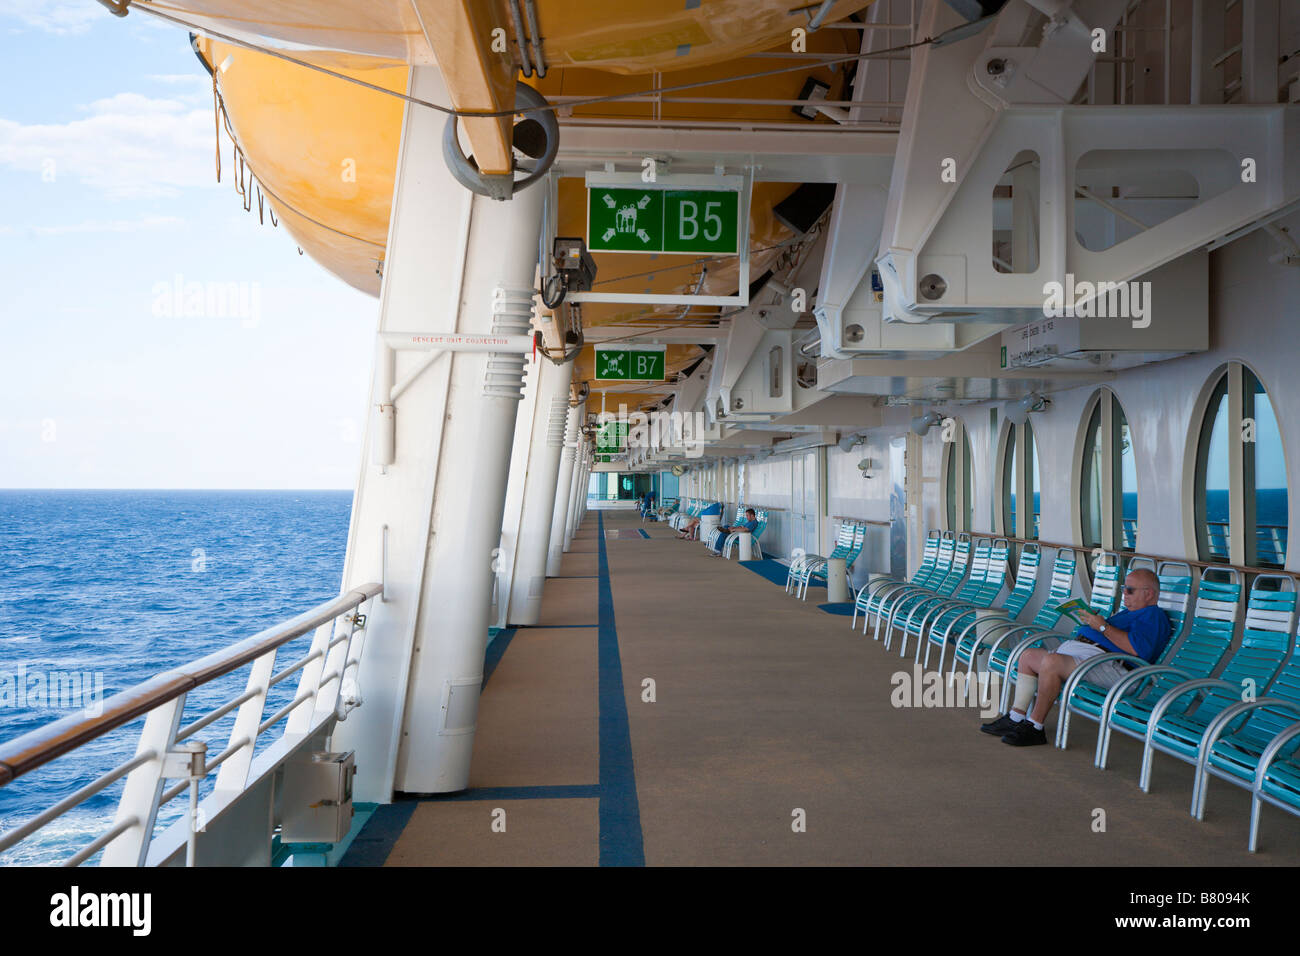 Man sits alone on deck of Royal Caribbean Navigator of the Seas in the shade of overhead lifeboats - Stock Image